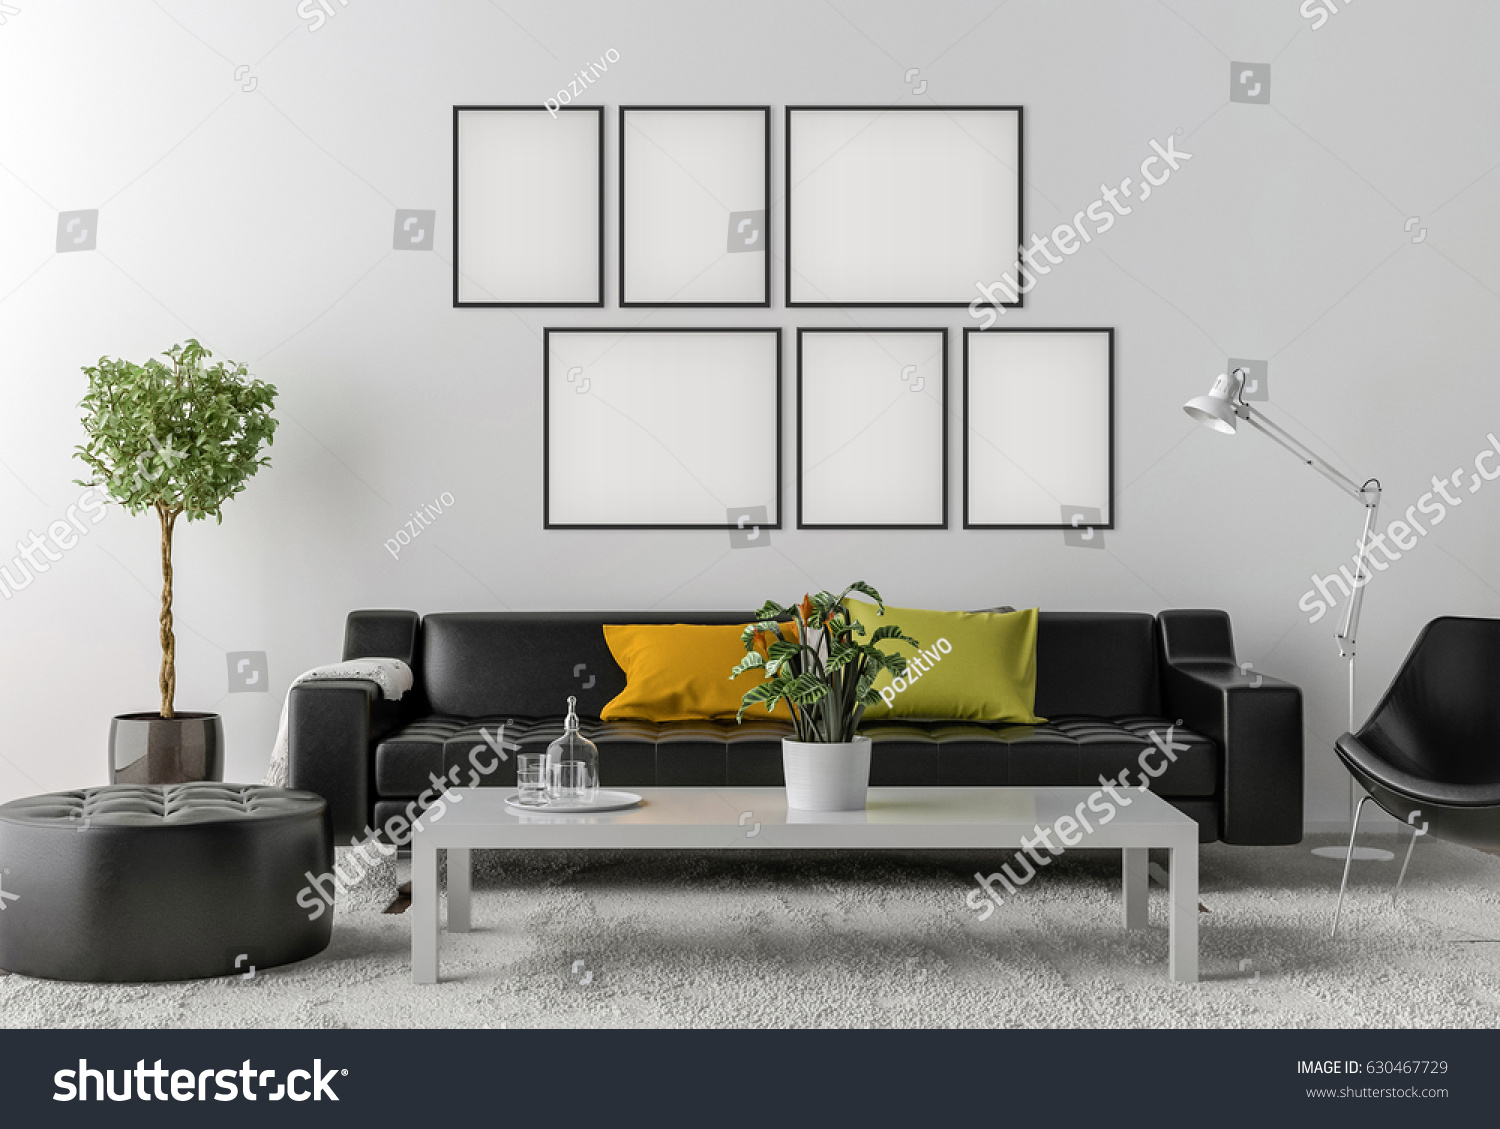 Picture frame interior set empty room stock illustration 630467729 picture frame interior set in empty room with sofa lamp and table 3d render geotapseo Gallery